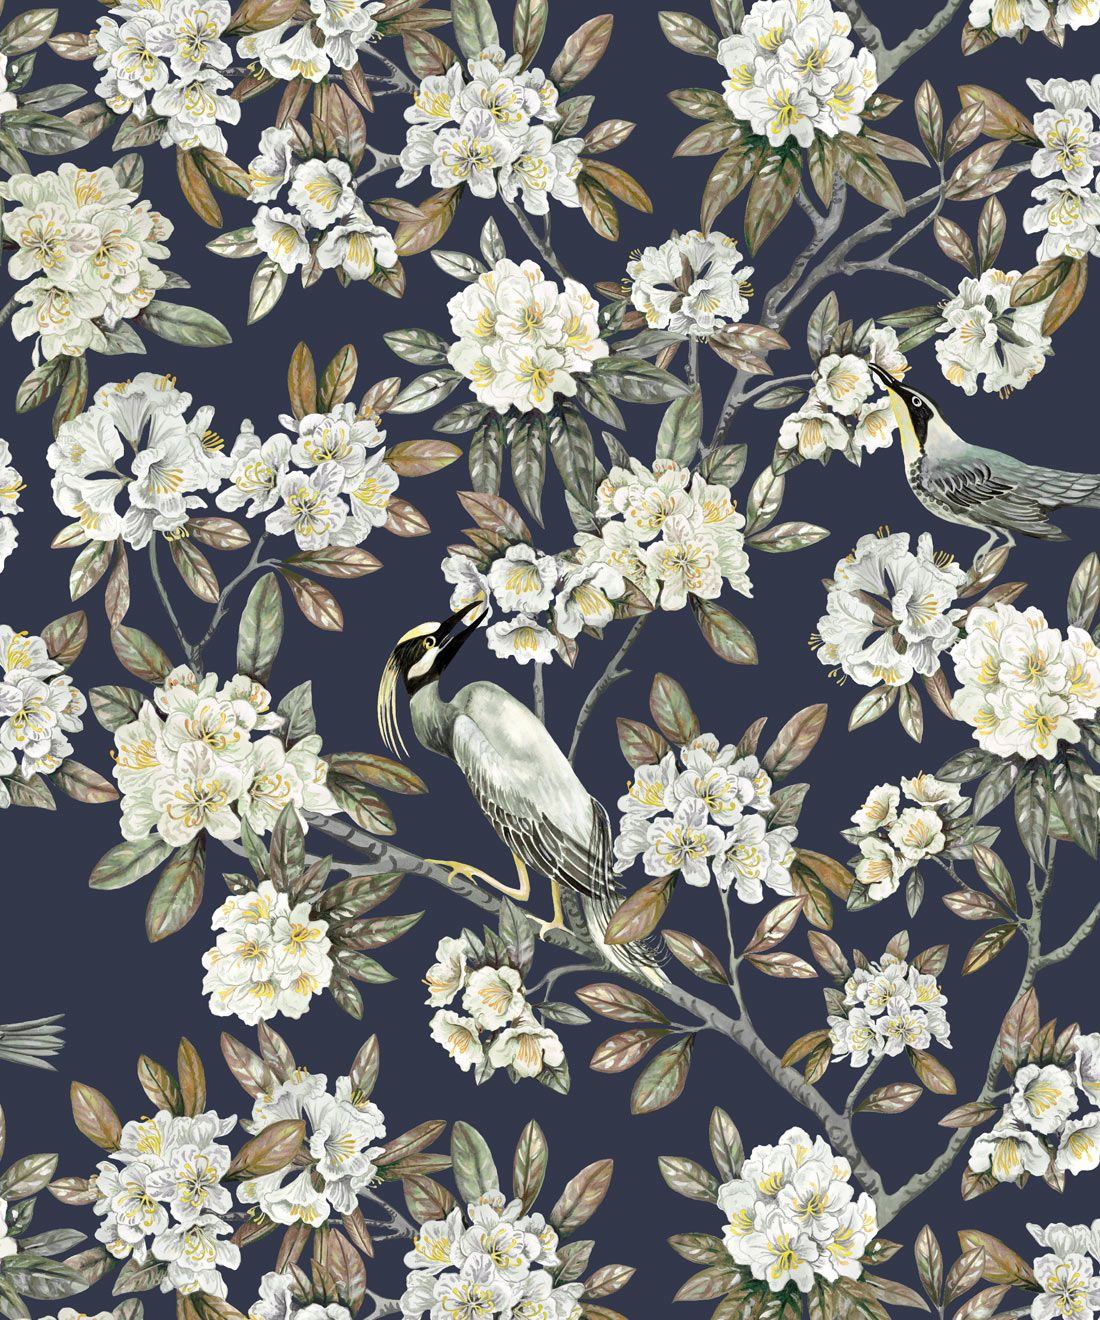 Victoria Wallpaper • Floral Wallpaper • Navy Wallpaper • Swatch